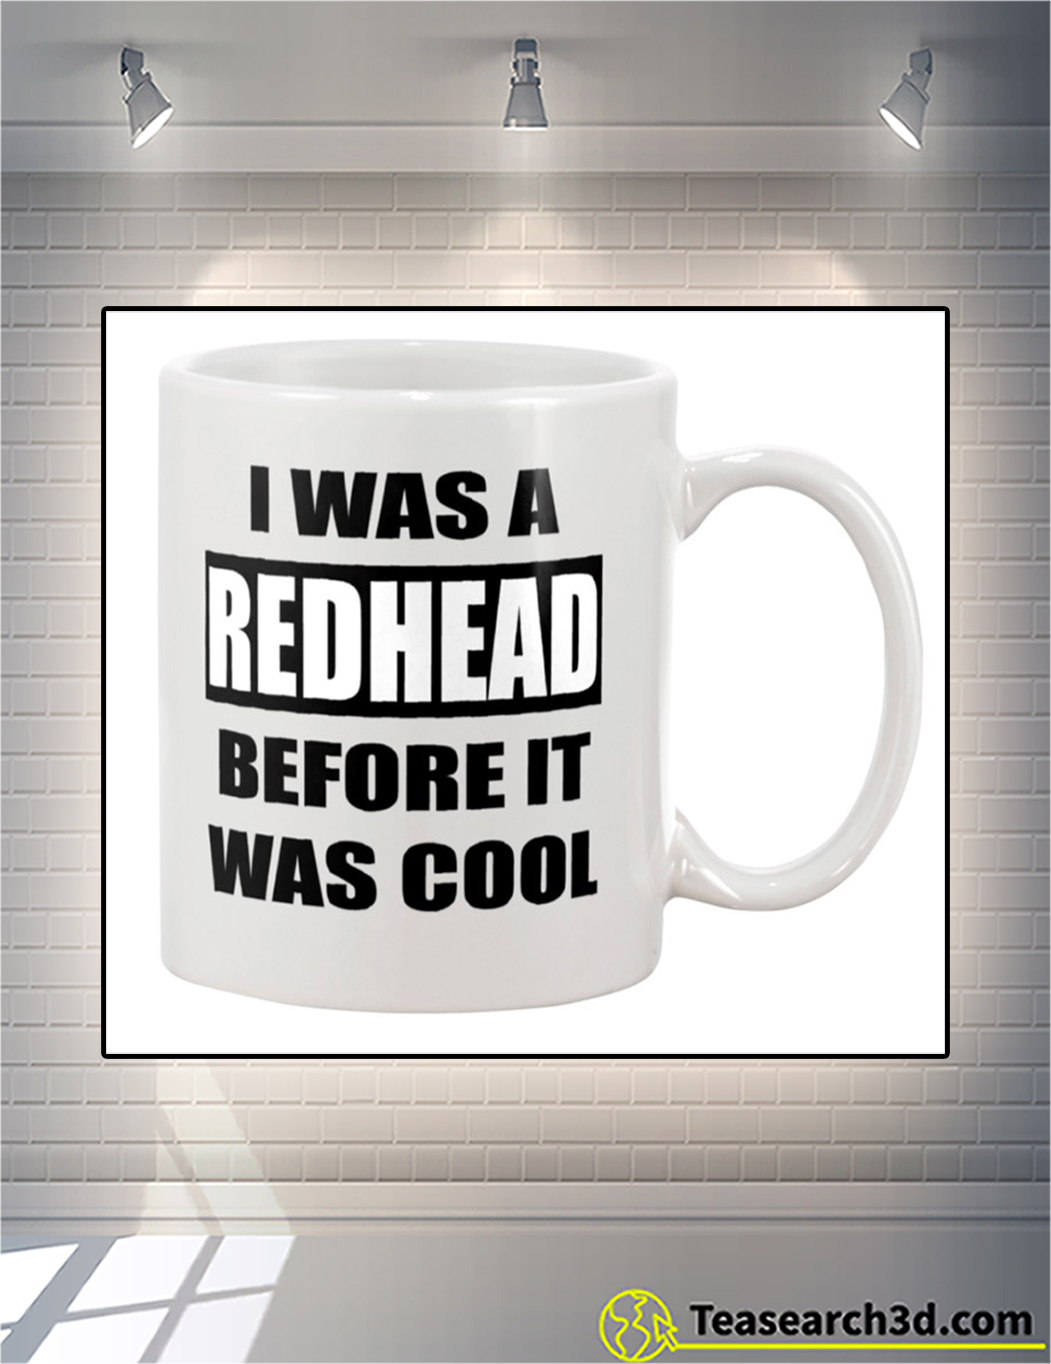 I was a red head before it was cool mug front